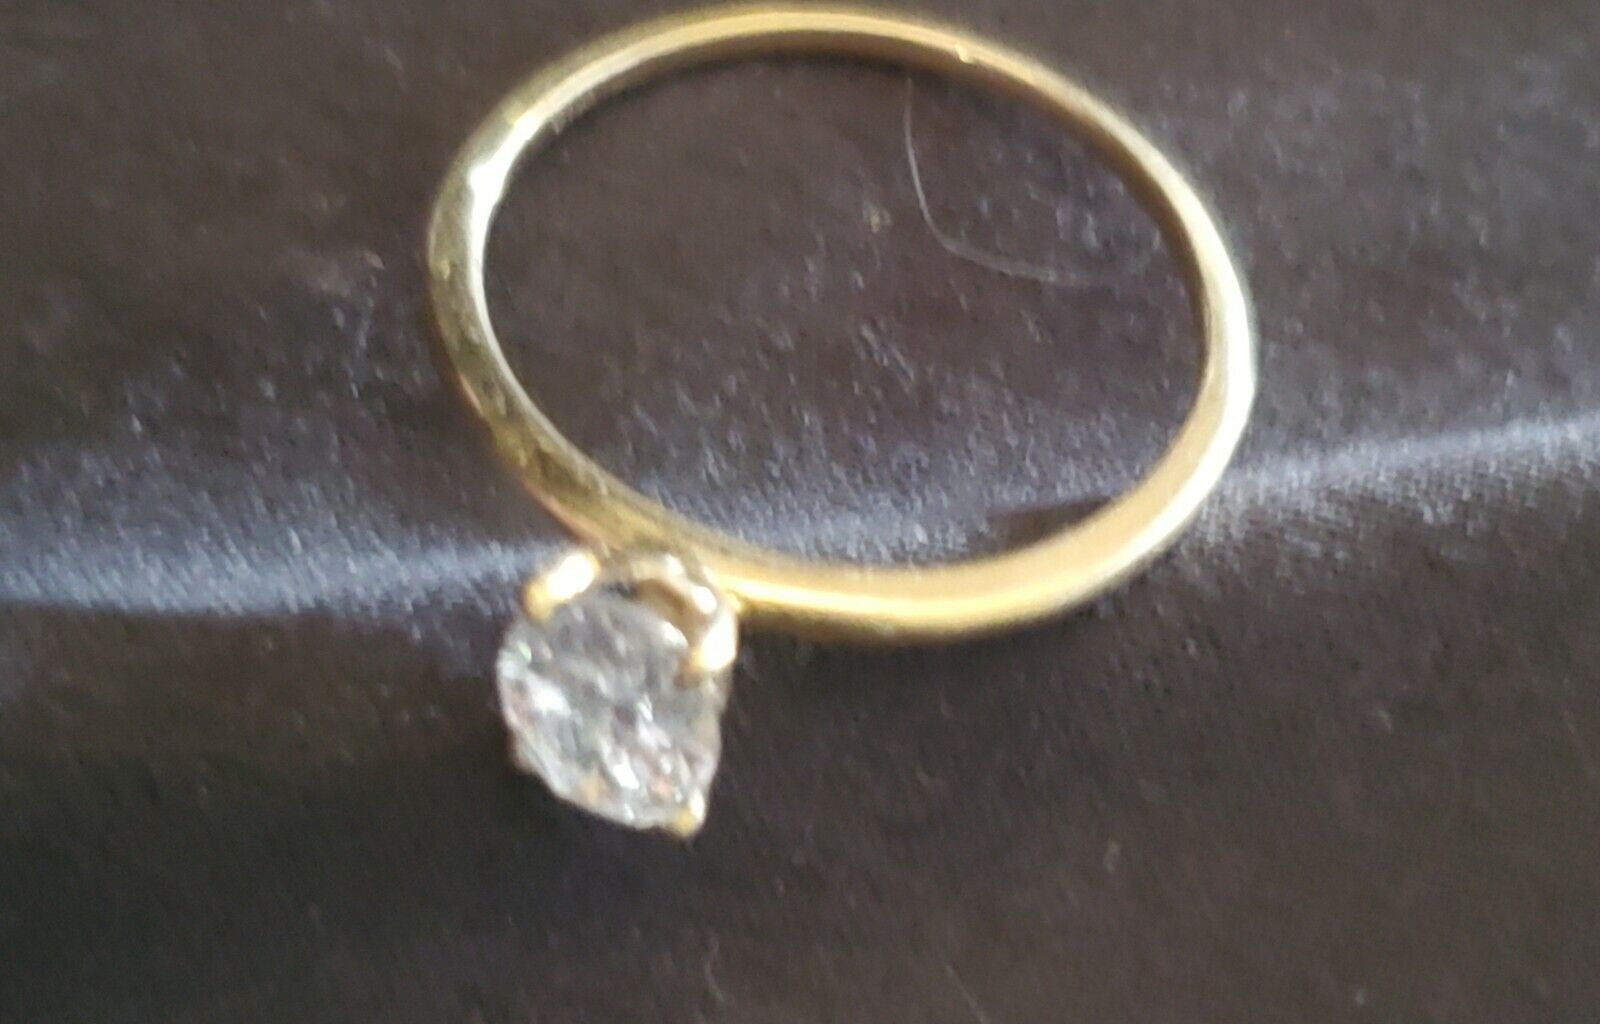 14k Gold Oval CZ Solitaire Ring, Size 7 - image 3